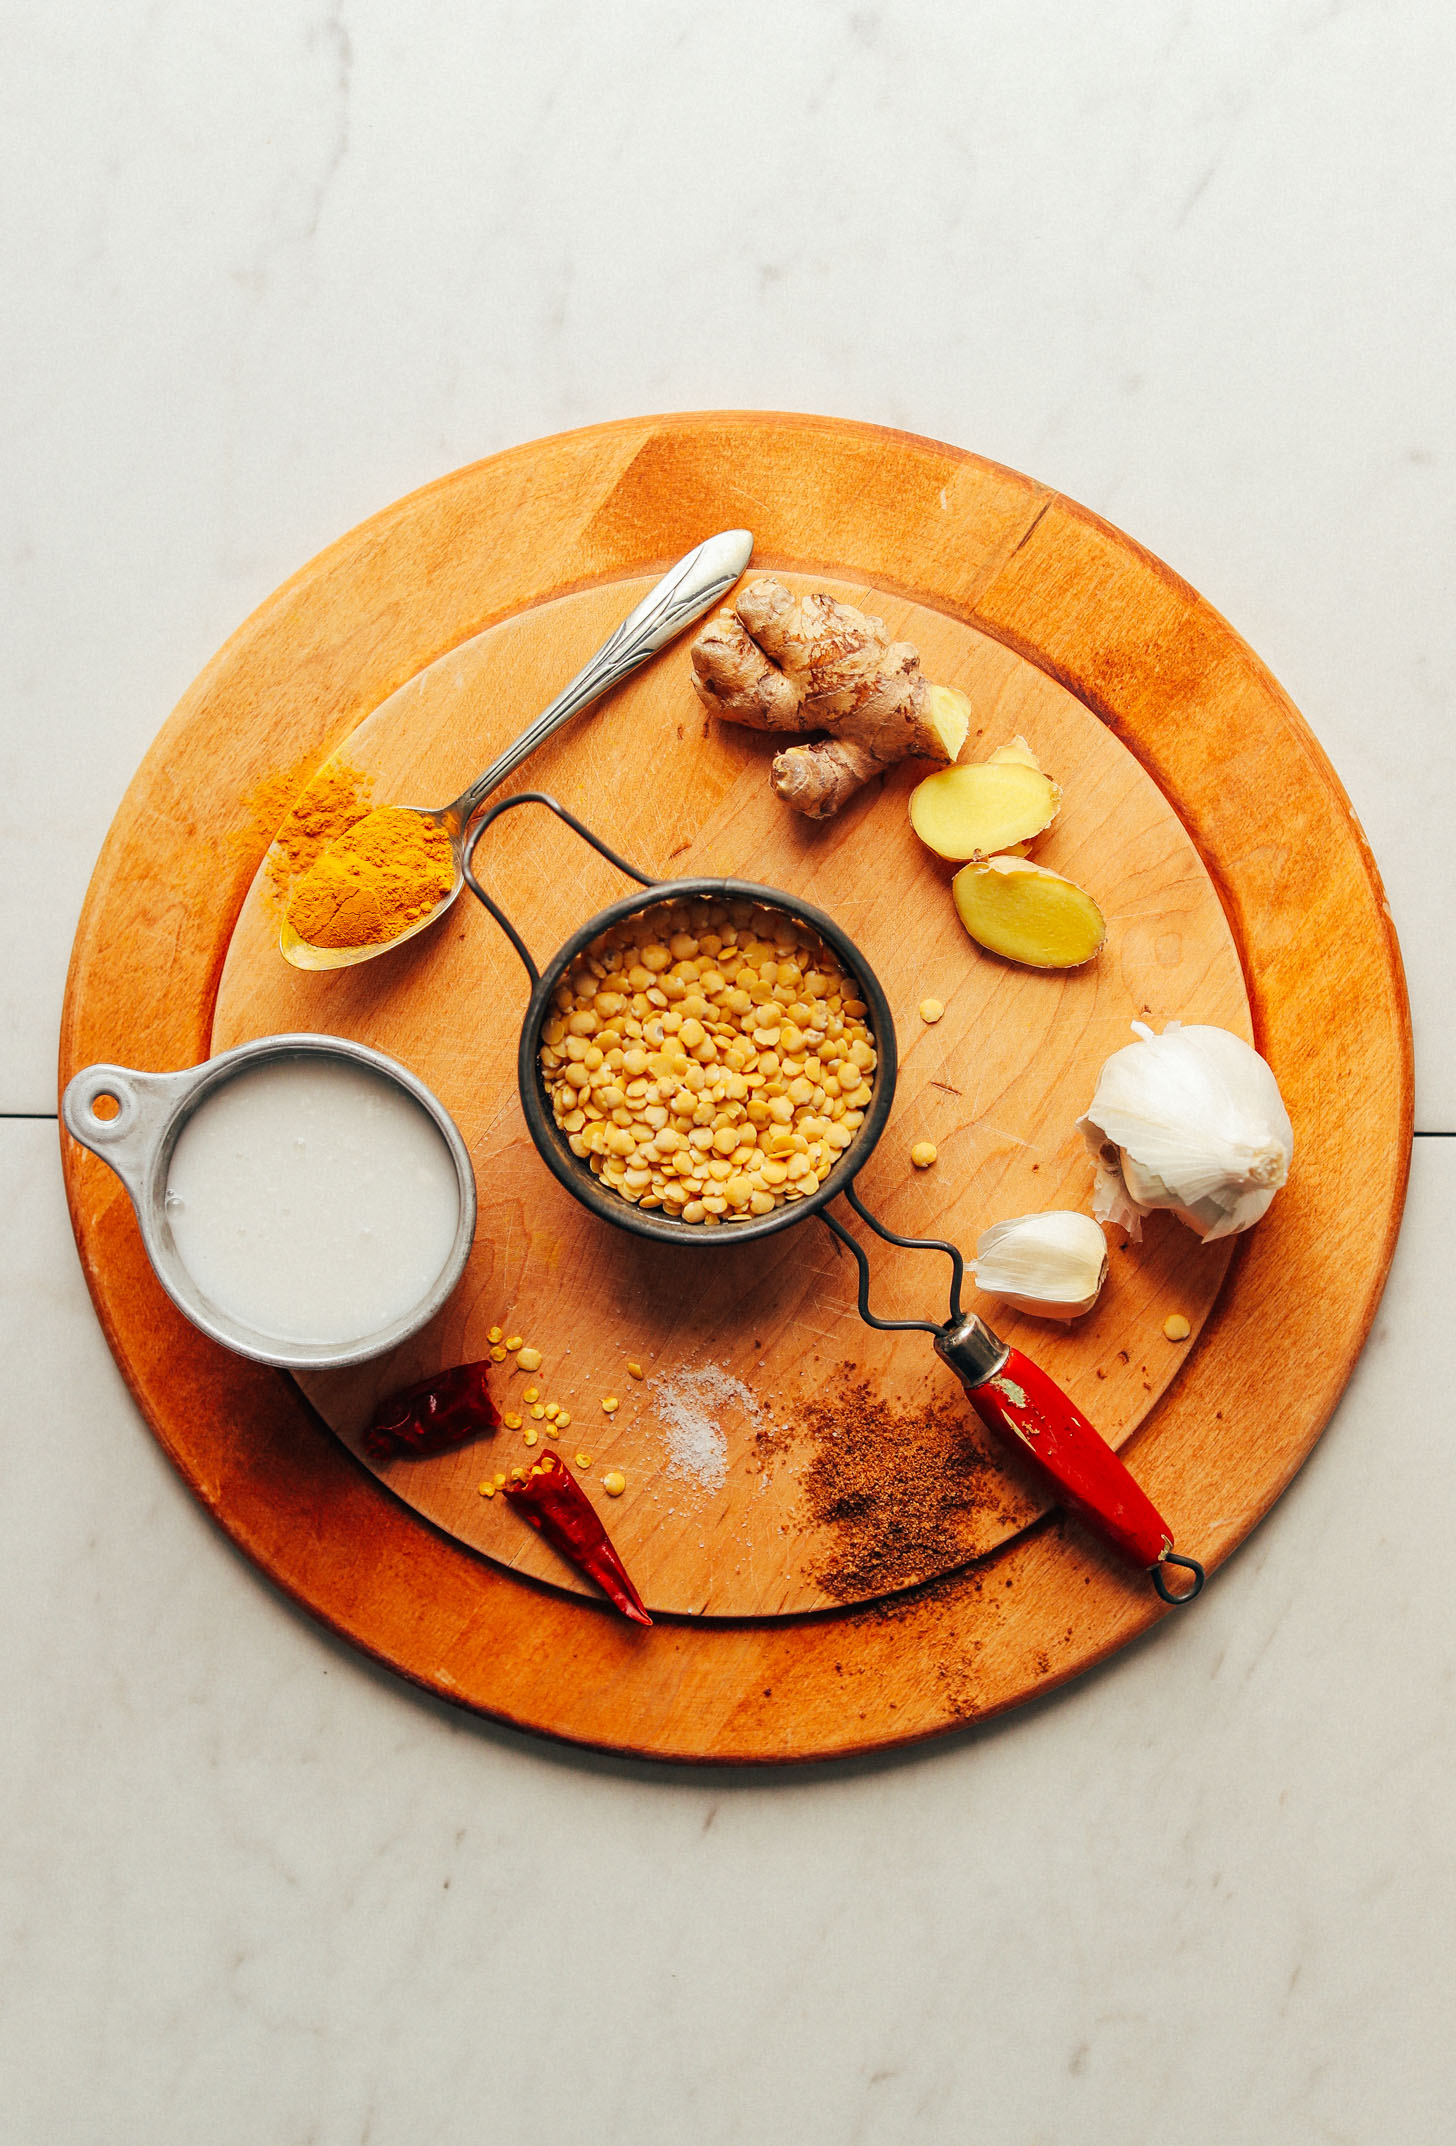 Wood serving platter with ingredients for making vegan Coconut Curried Golden Lentils